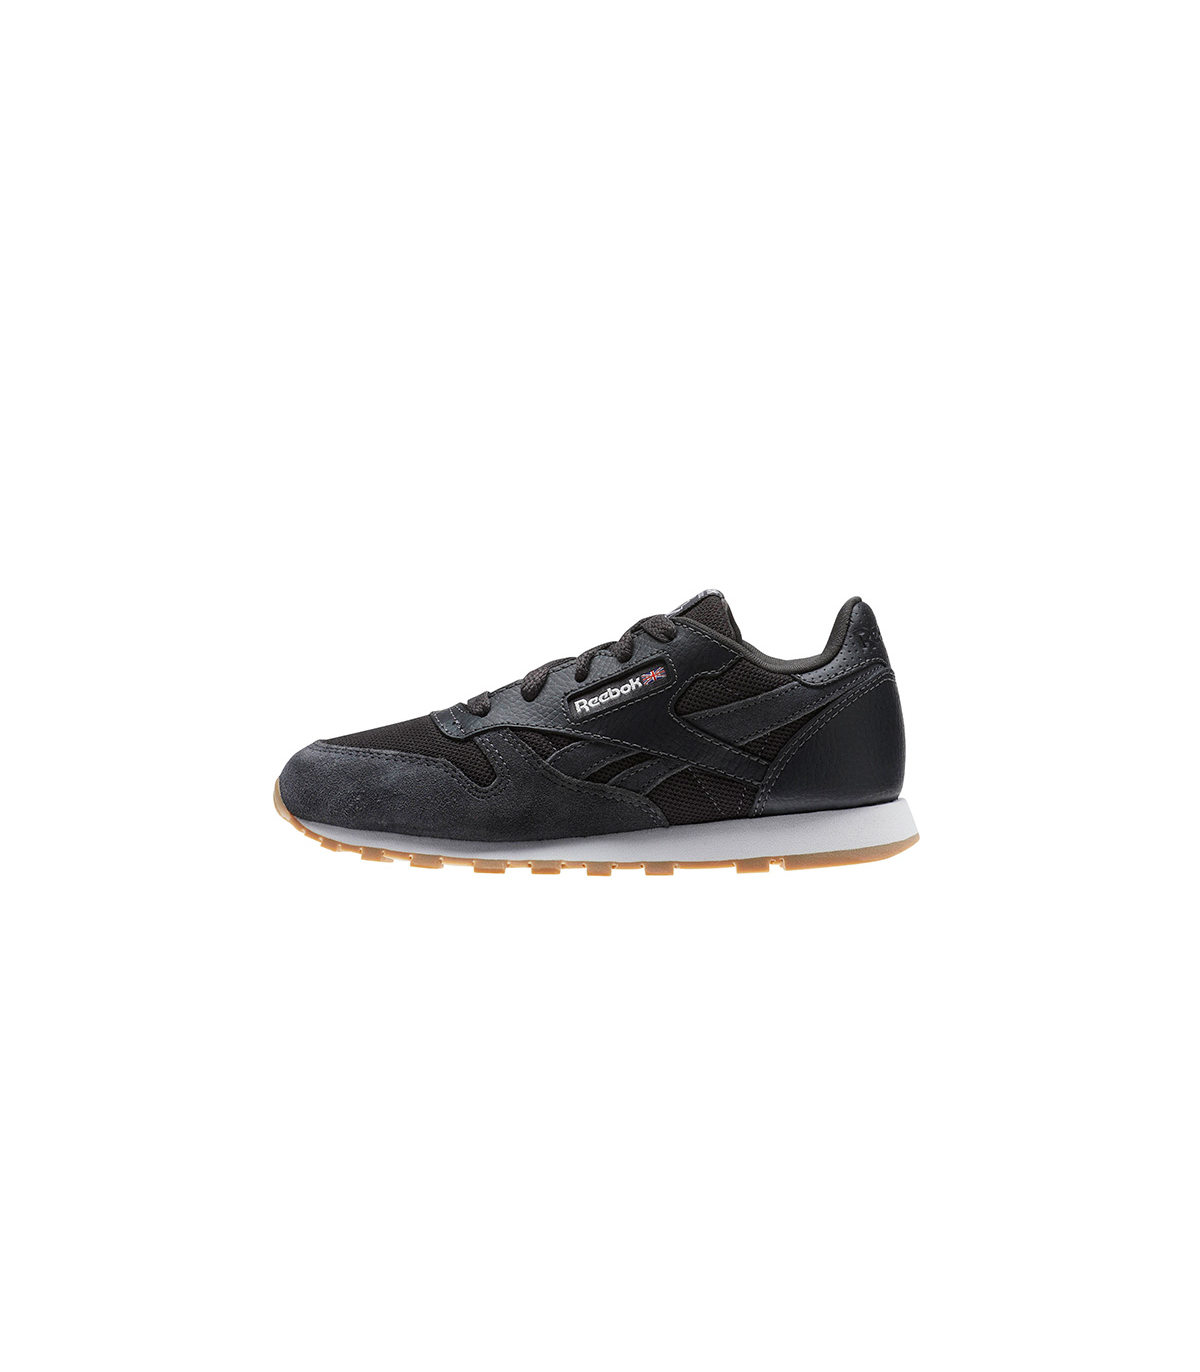 a7ea9698024e3 Zapatillas Reebok Classic Leather Essentials